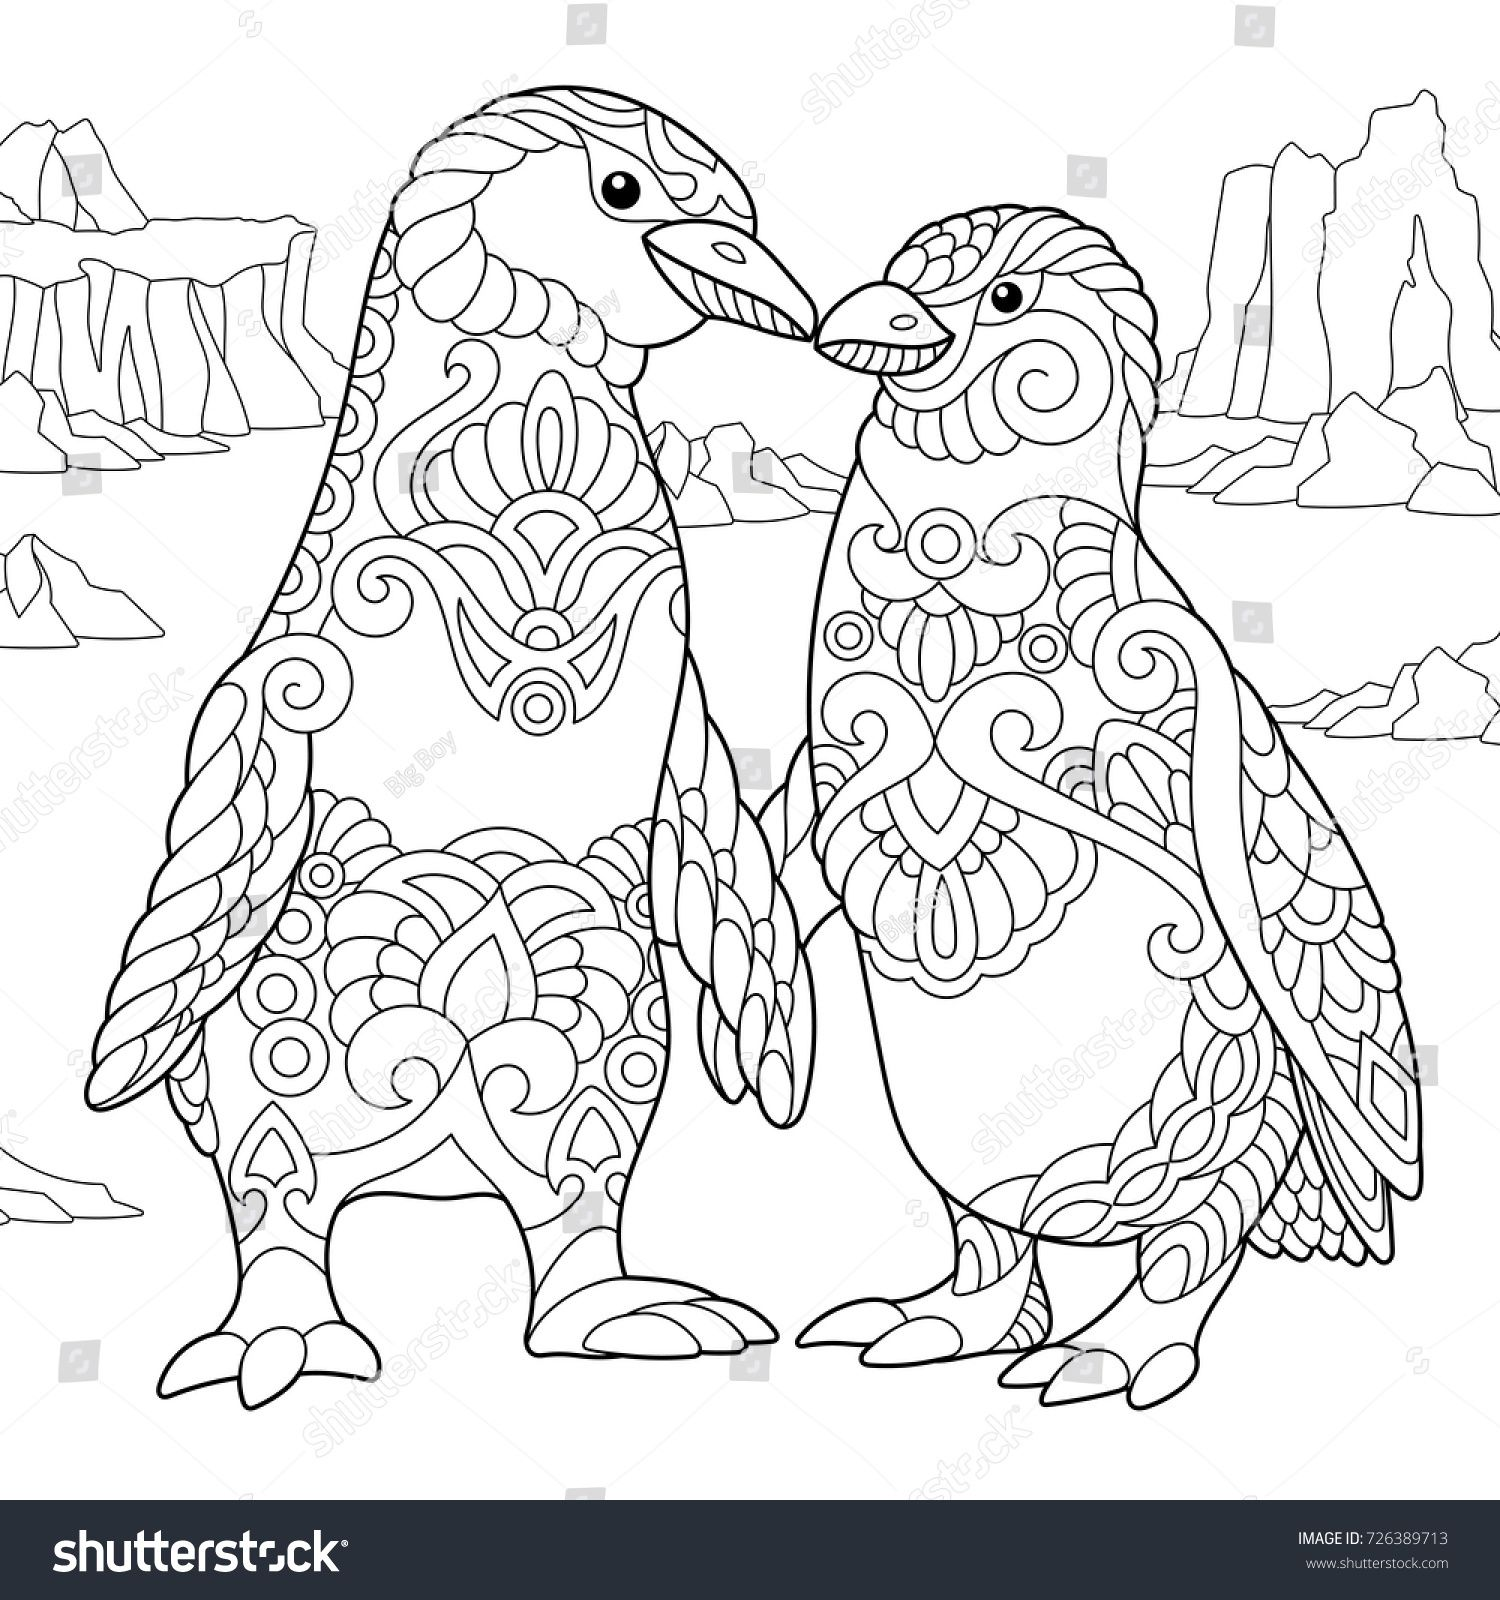 Coloring page of emperor penguins couple in love. Freehand sketch ...